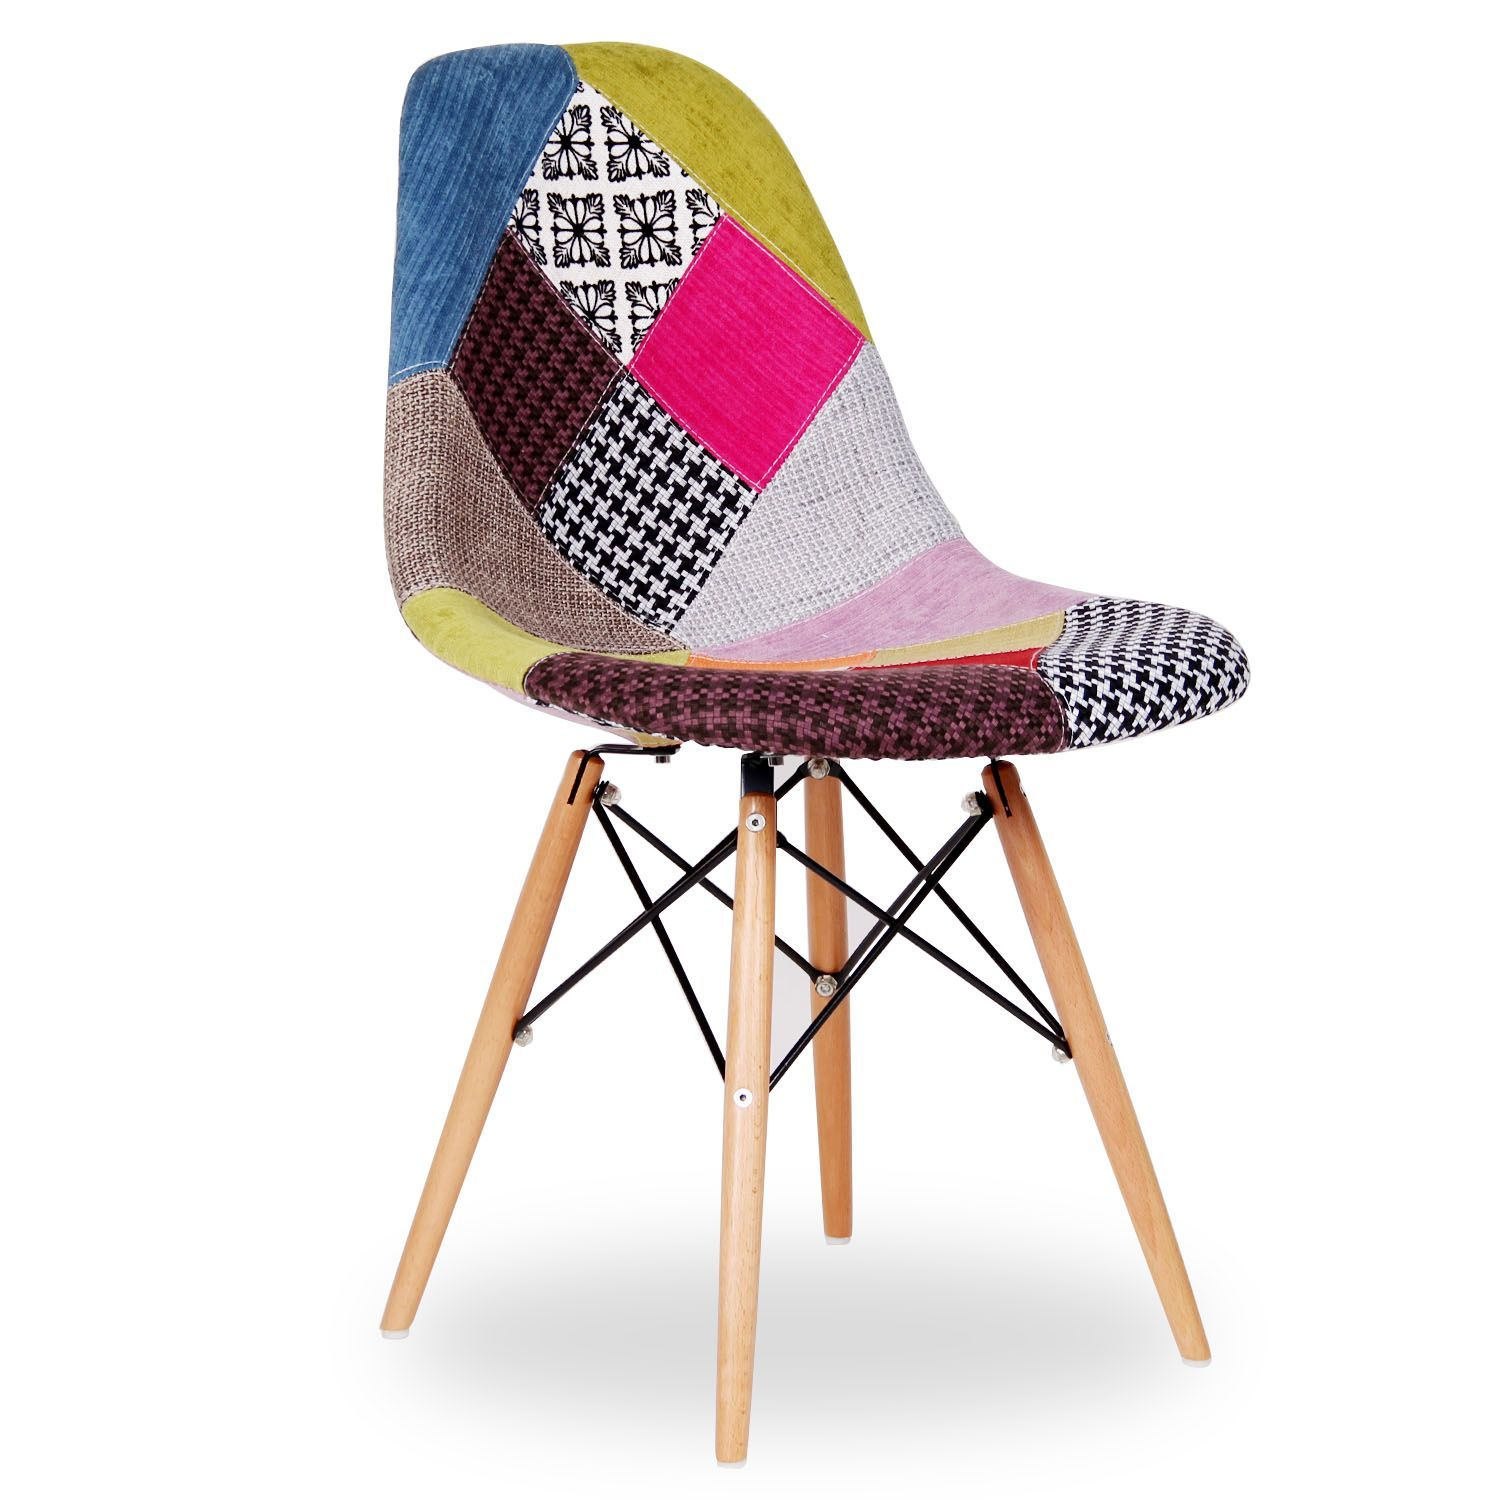 silla wooden patchwork edition sillas icono del diseo dsw patchwork sillas